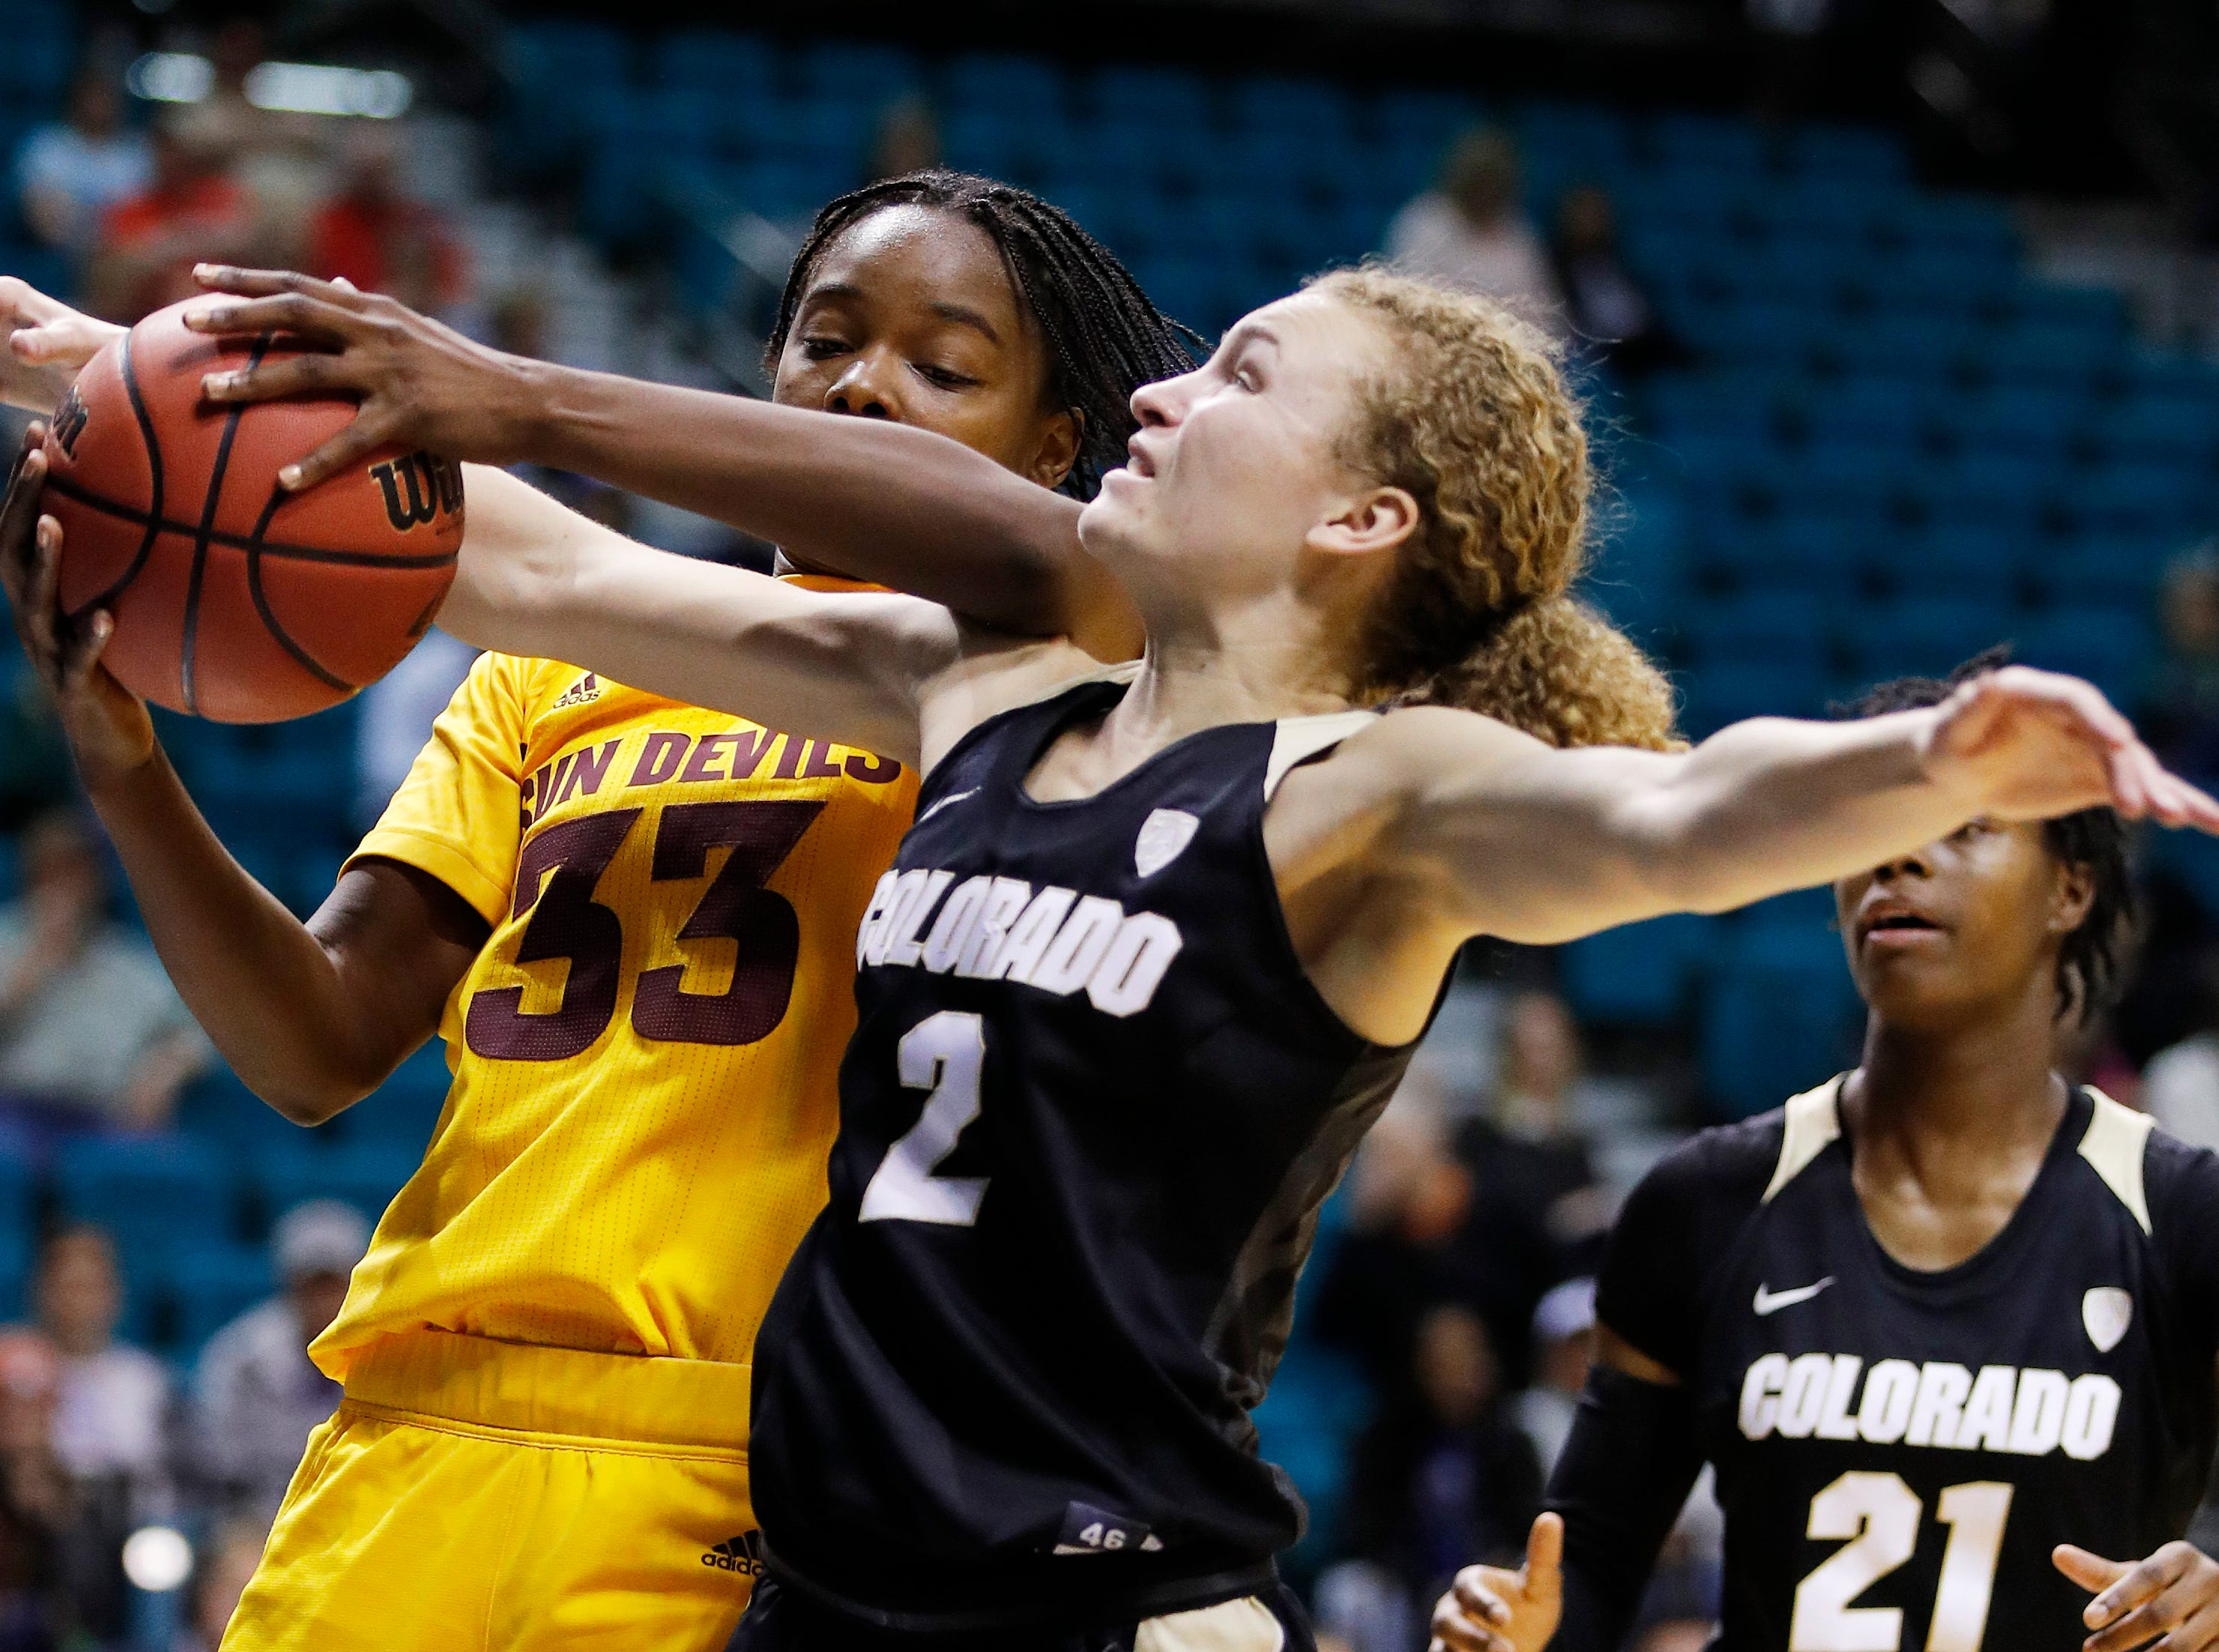 Arizona State's Charnea Johnson-Chapman (33) and Colorado's Alexis Robinson (2) vie for a rebound during the second half of an NCAA college basketball game at the Pac-12 women's tournament Thursday, March 7, 2019, in Las Vegas. (AP Photo/John Locher)